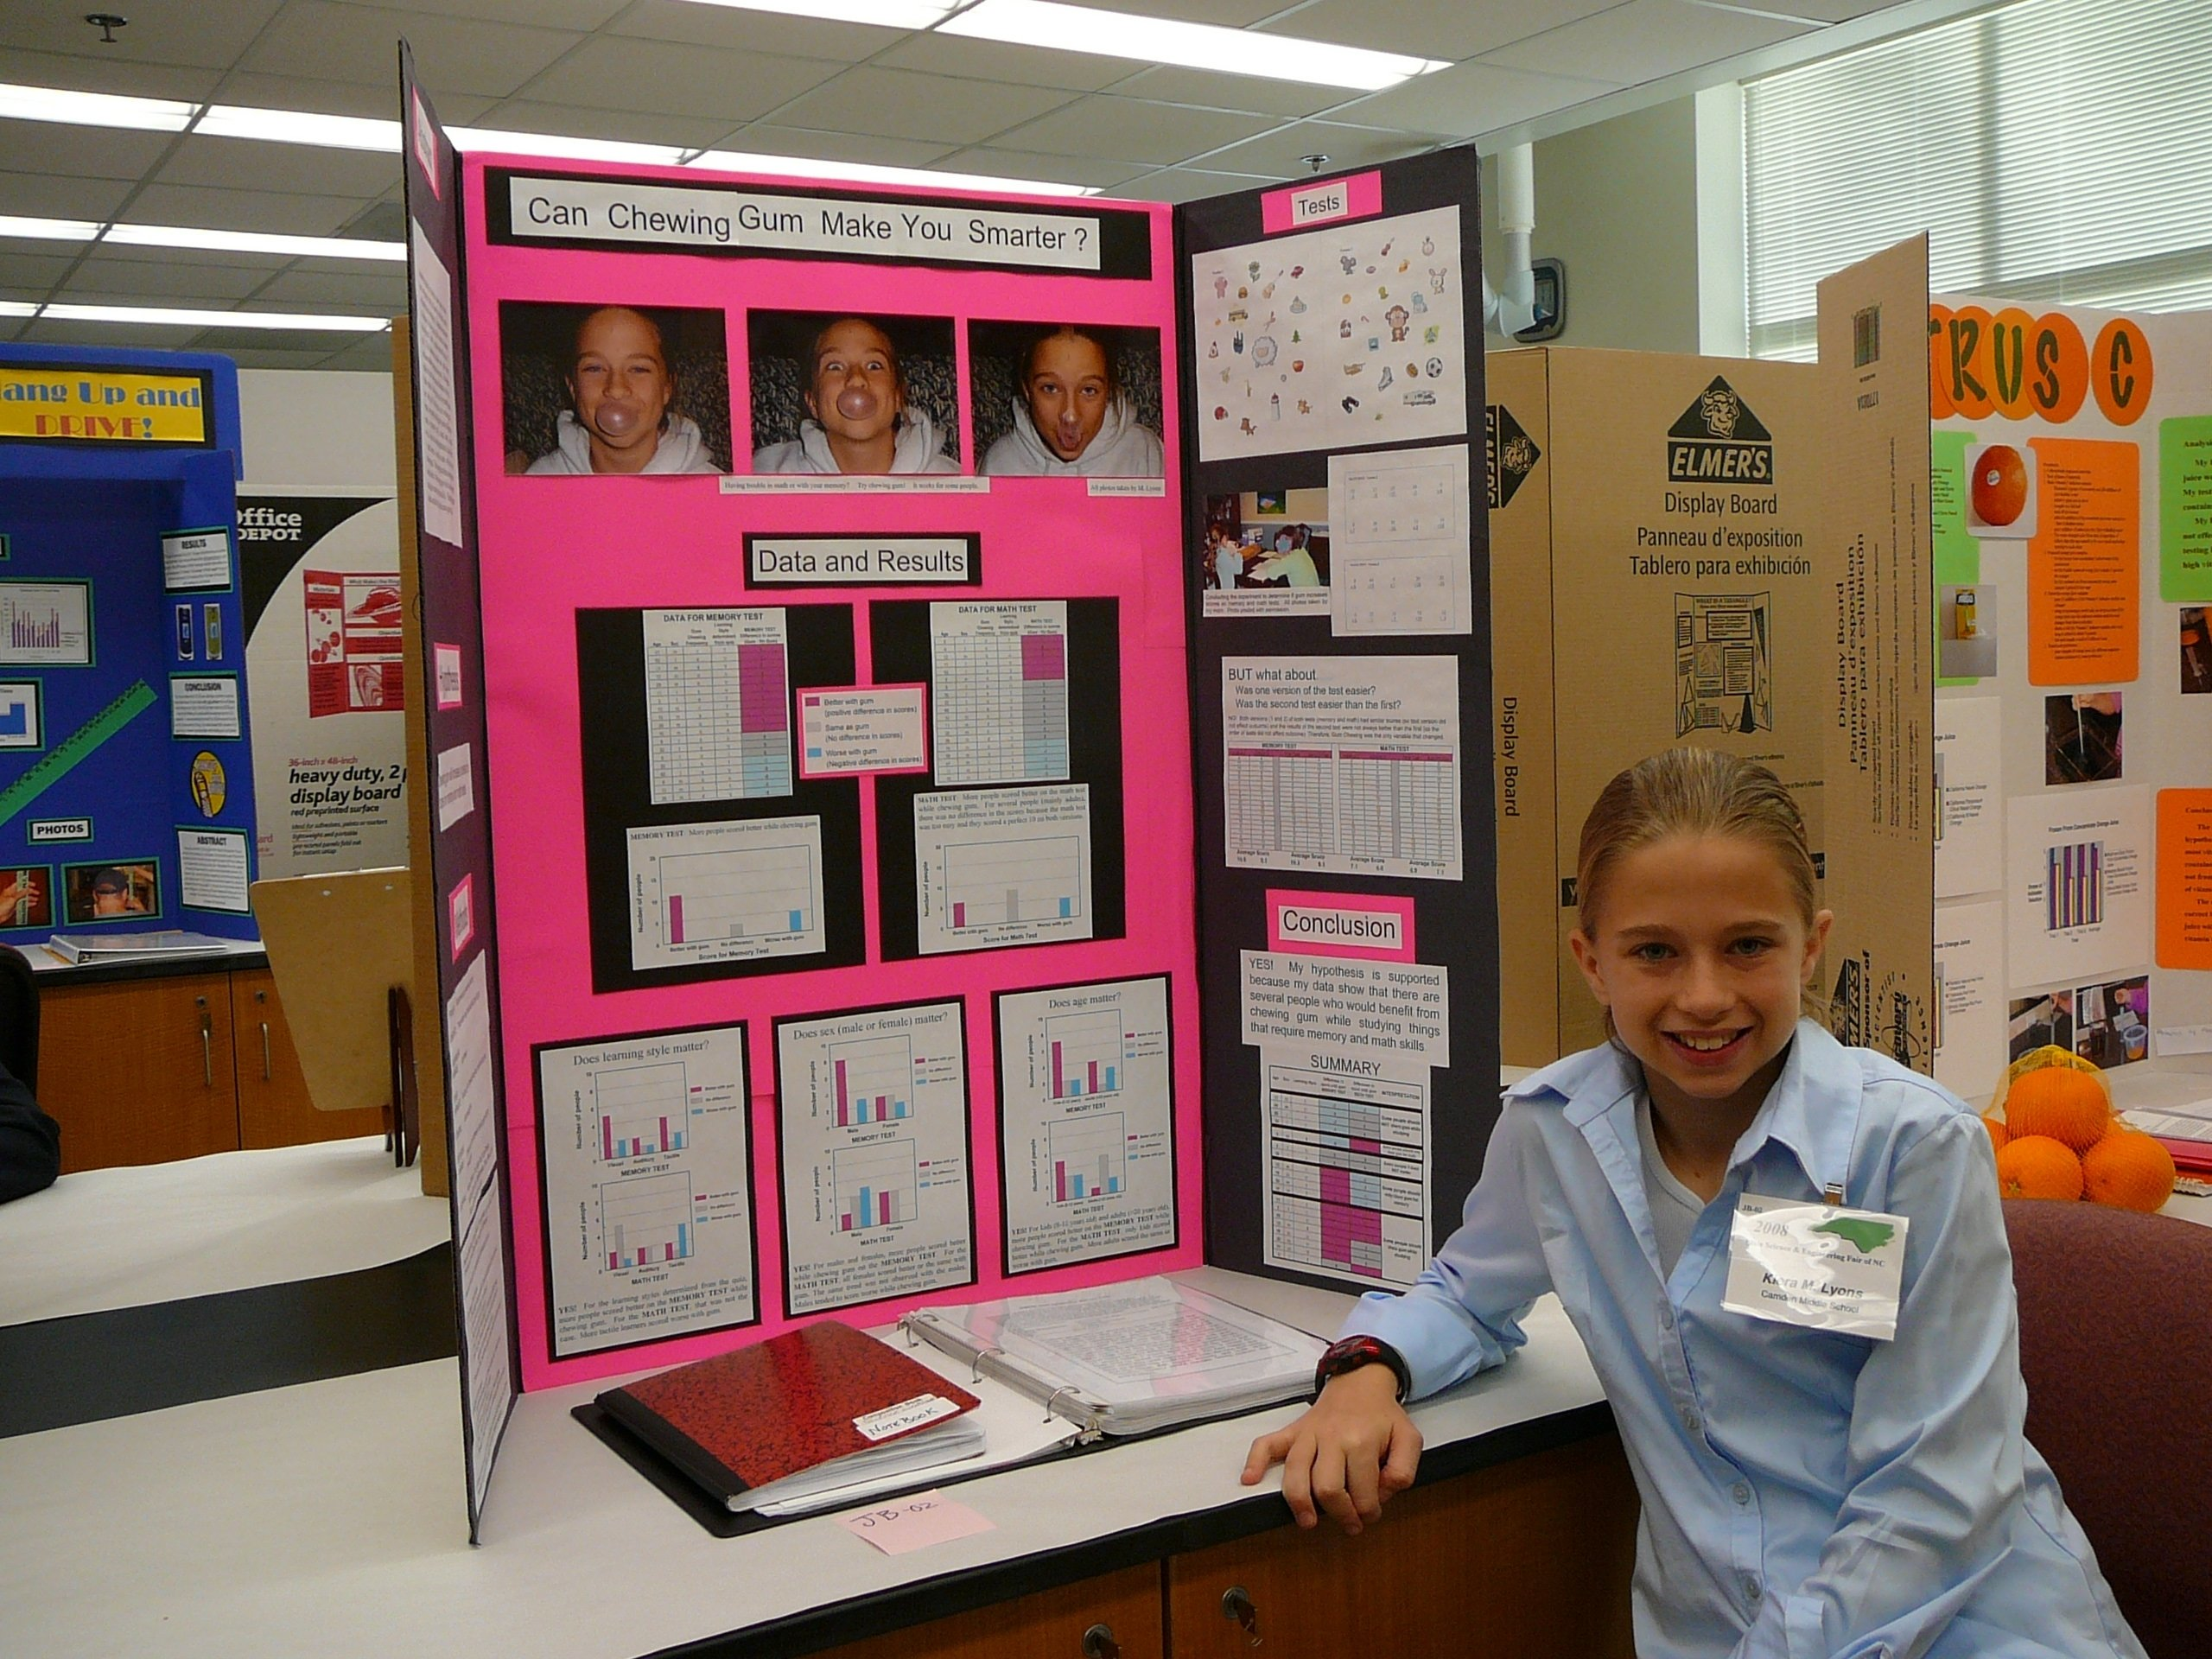 10 Nice Science Fair Ideas For 3Rd Graders match the science fair project to the type of kid science fair 18